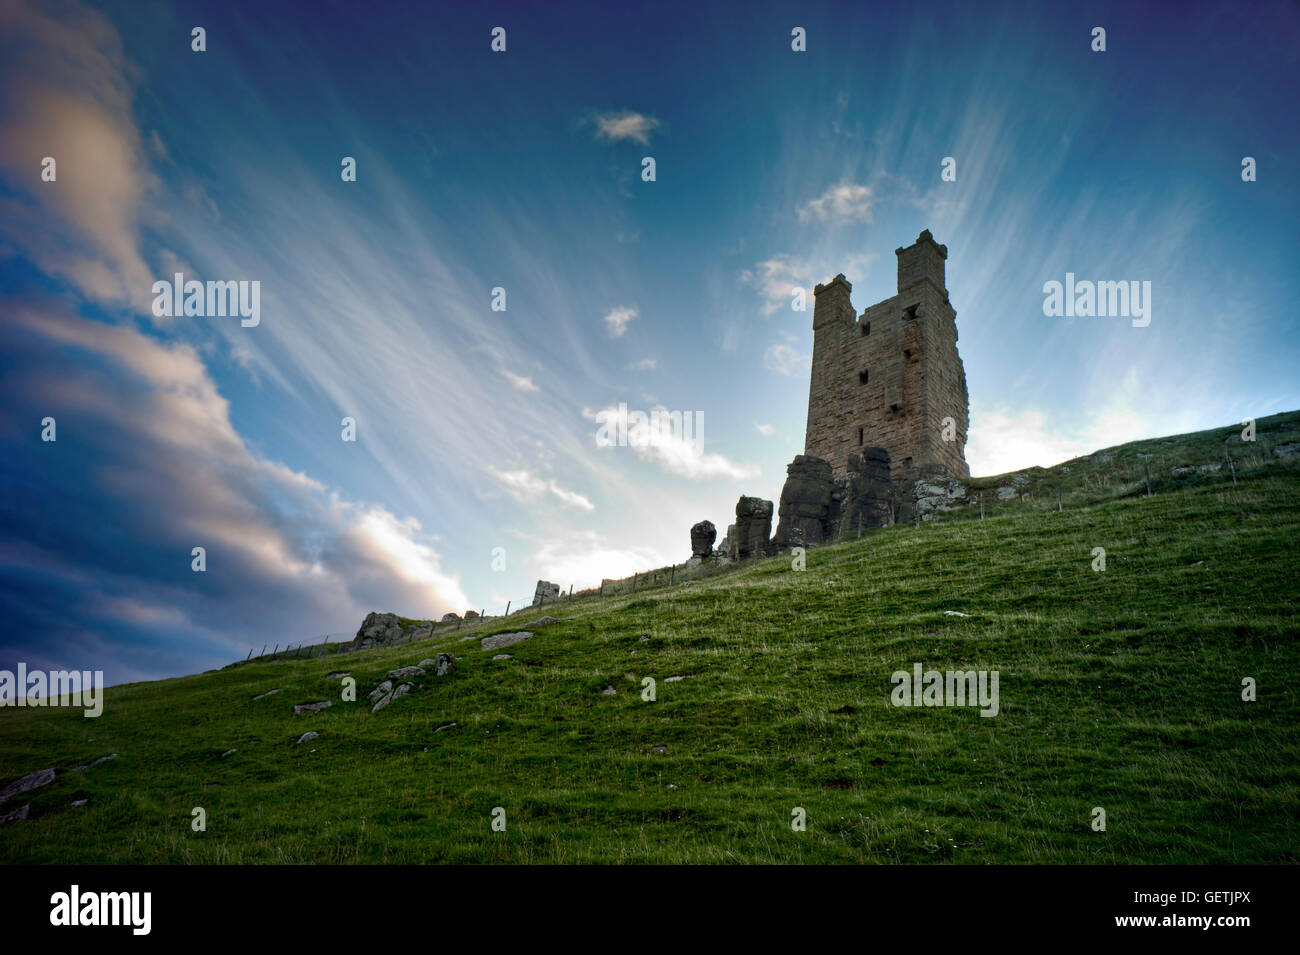 Dunstanburgh castle sits high on the headland. - Stock Image